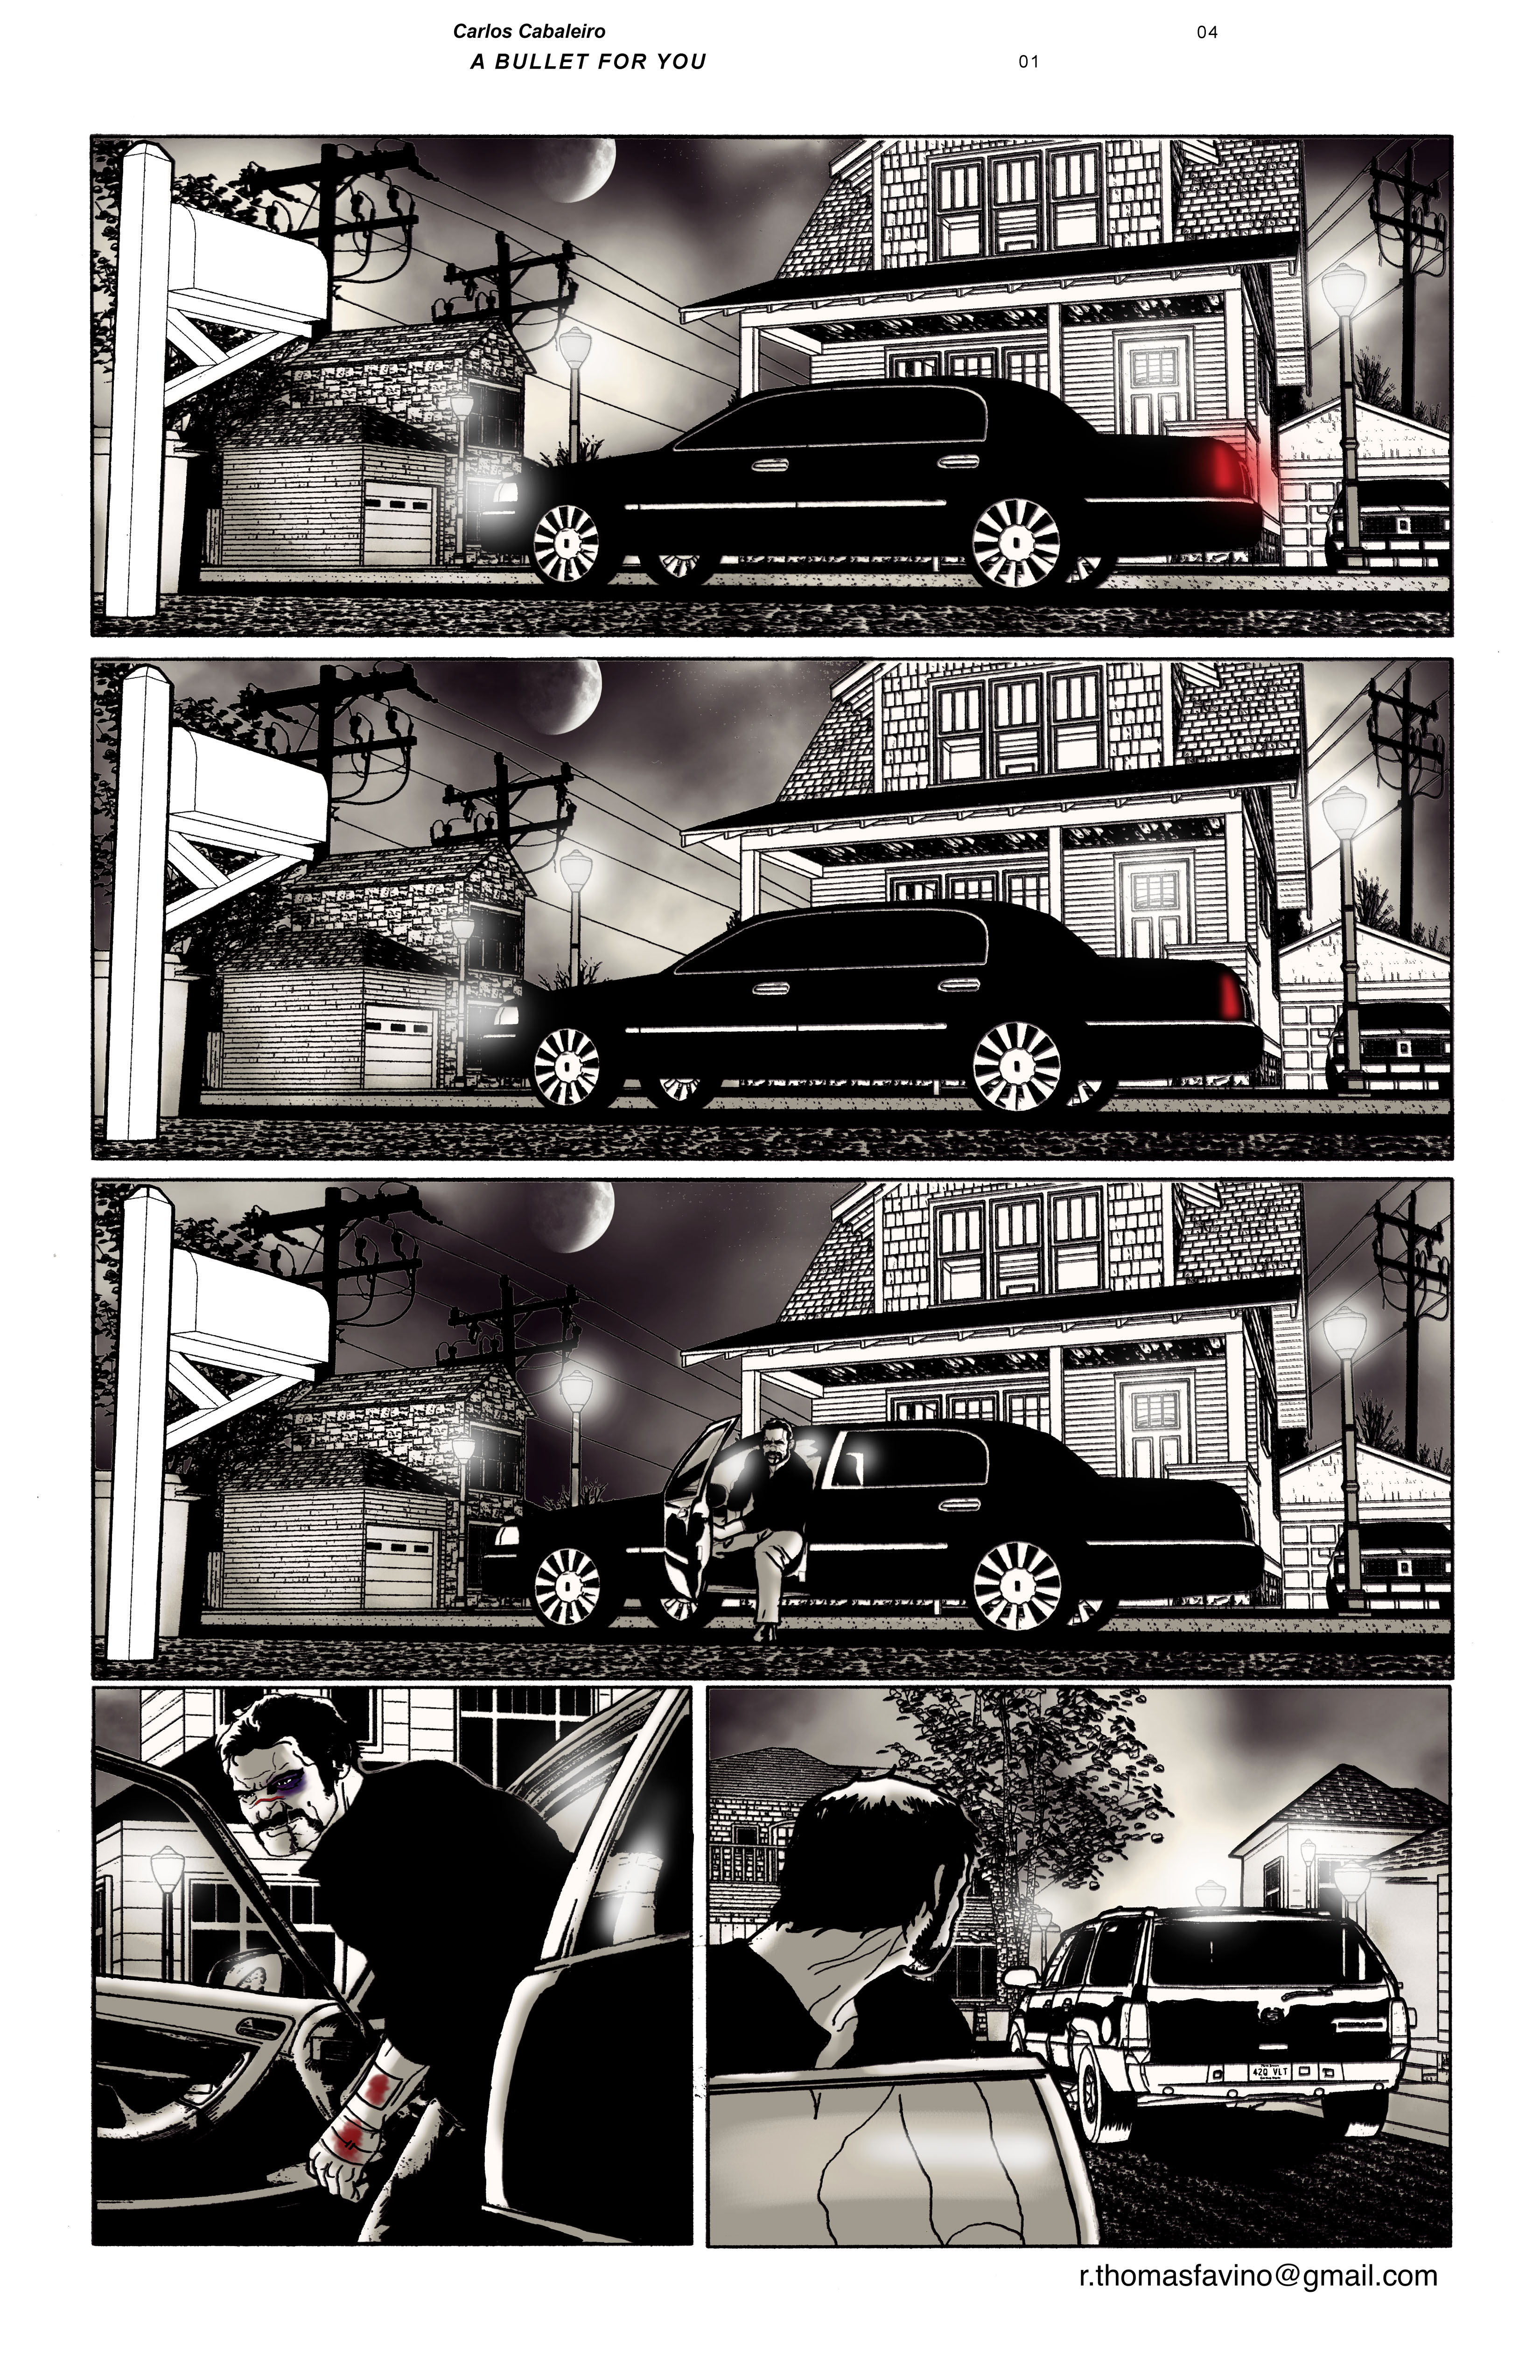 A Bullet for You #1 page 4